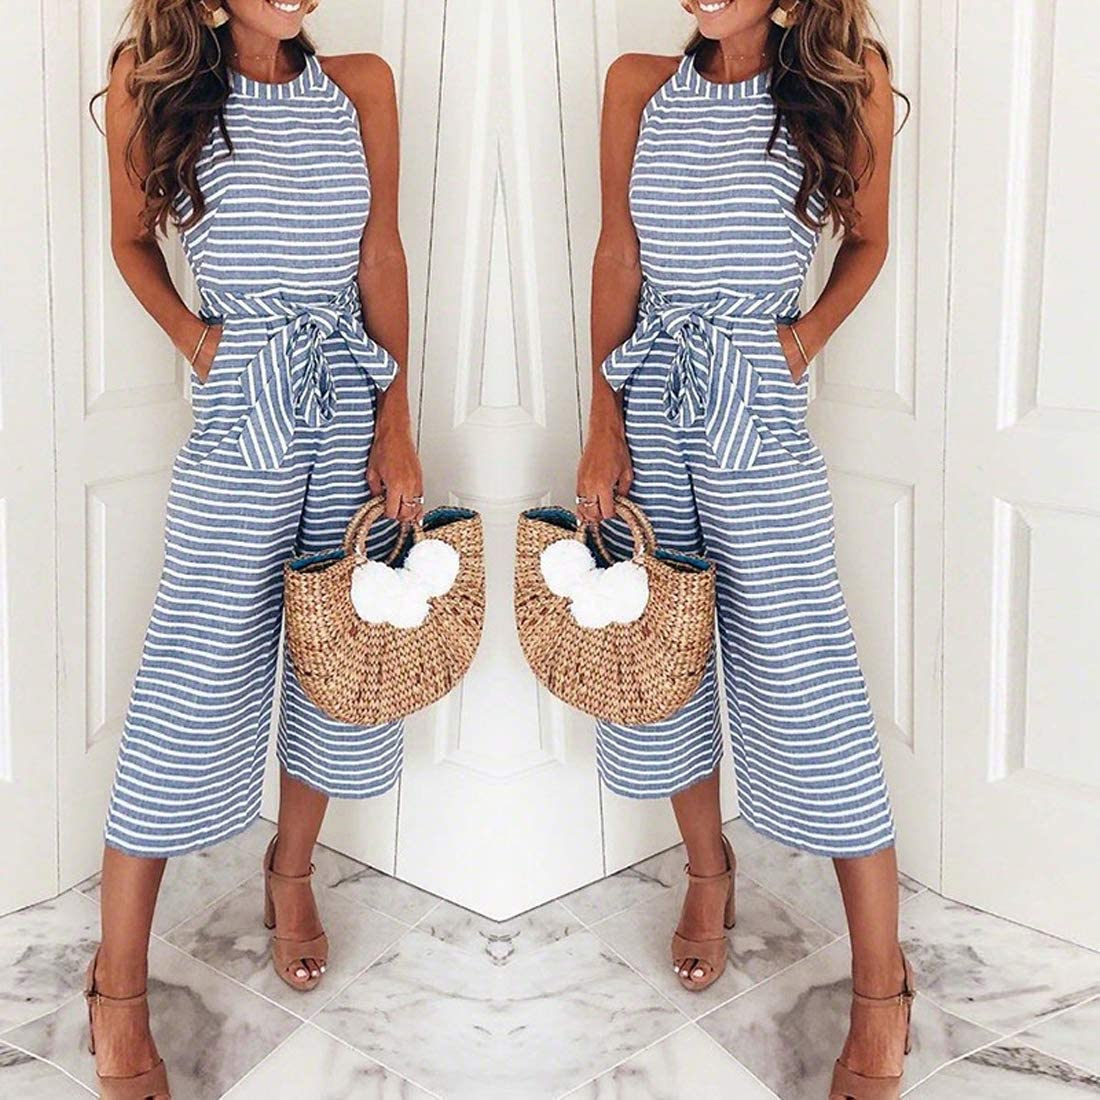 AMiERY Womens Floral Printed Jumpsuits Solid Rompers Casual Comfy Striped Jumpsuit with Pockets